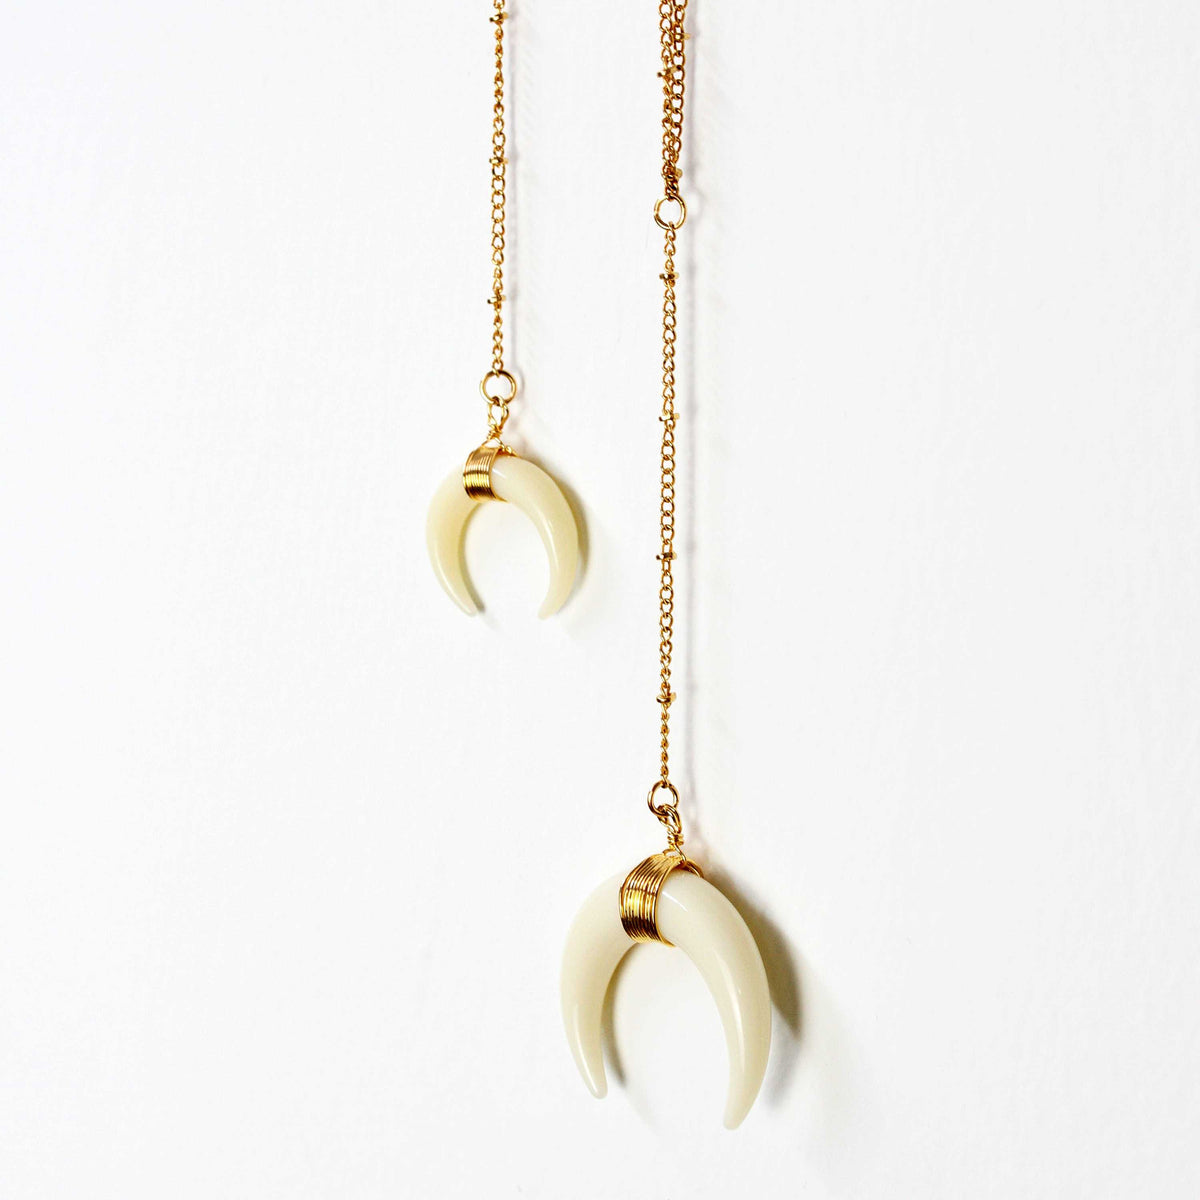 Free Gift - Handmade Double Horn Moon Pendant Necklace - worthtryit.com